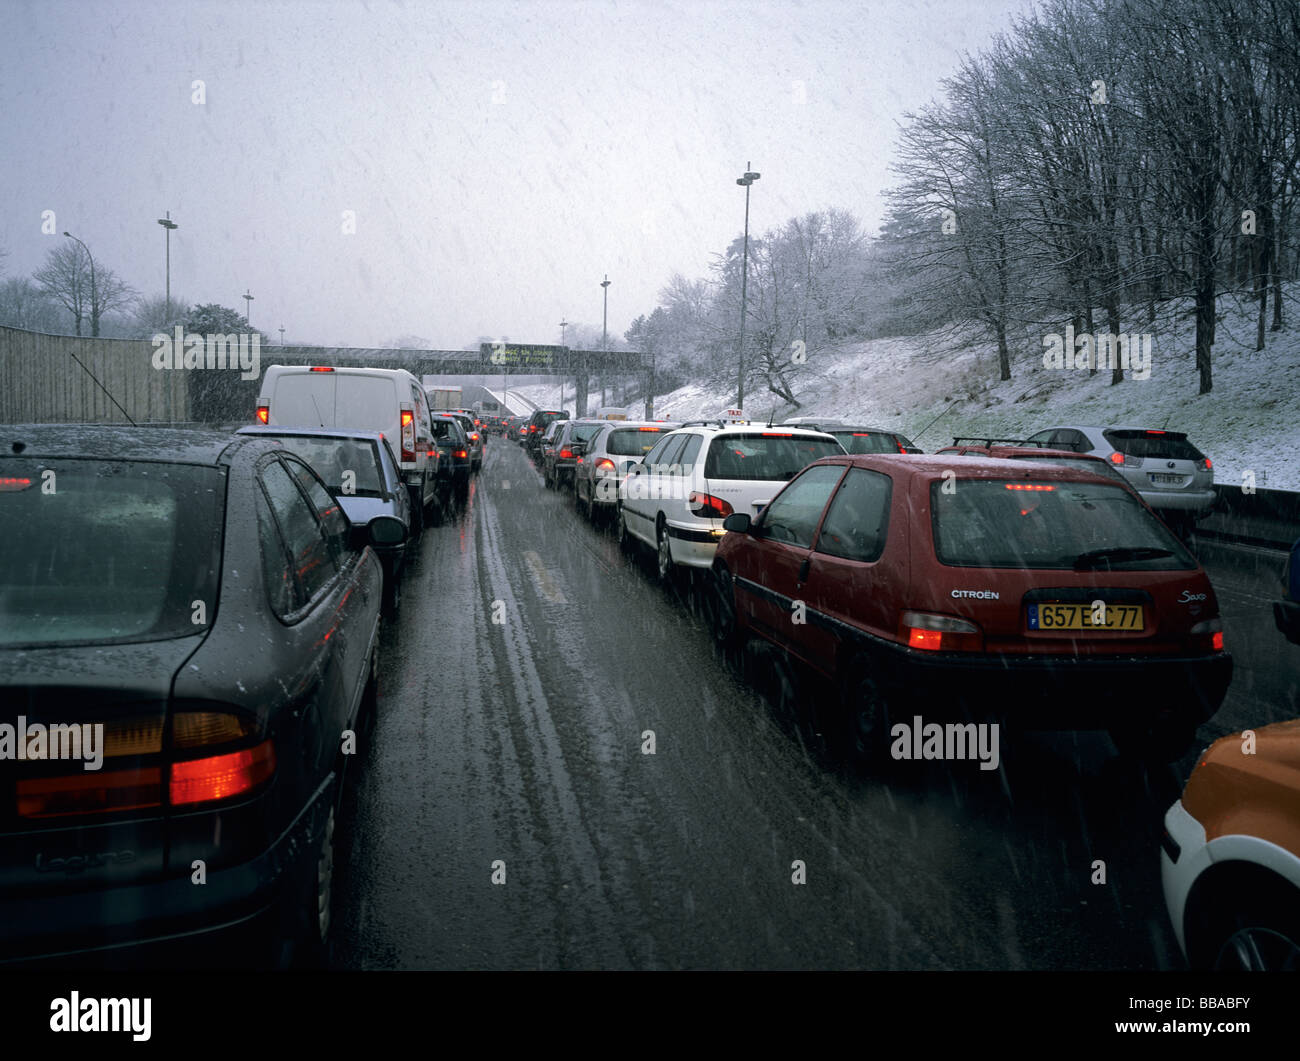 6x4.5cm Paris, France, A13 speedway traffic cork due to snow fall - Stock Image